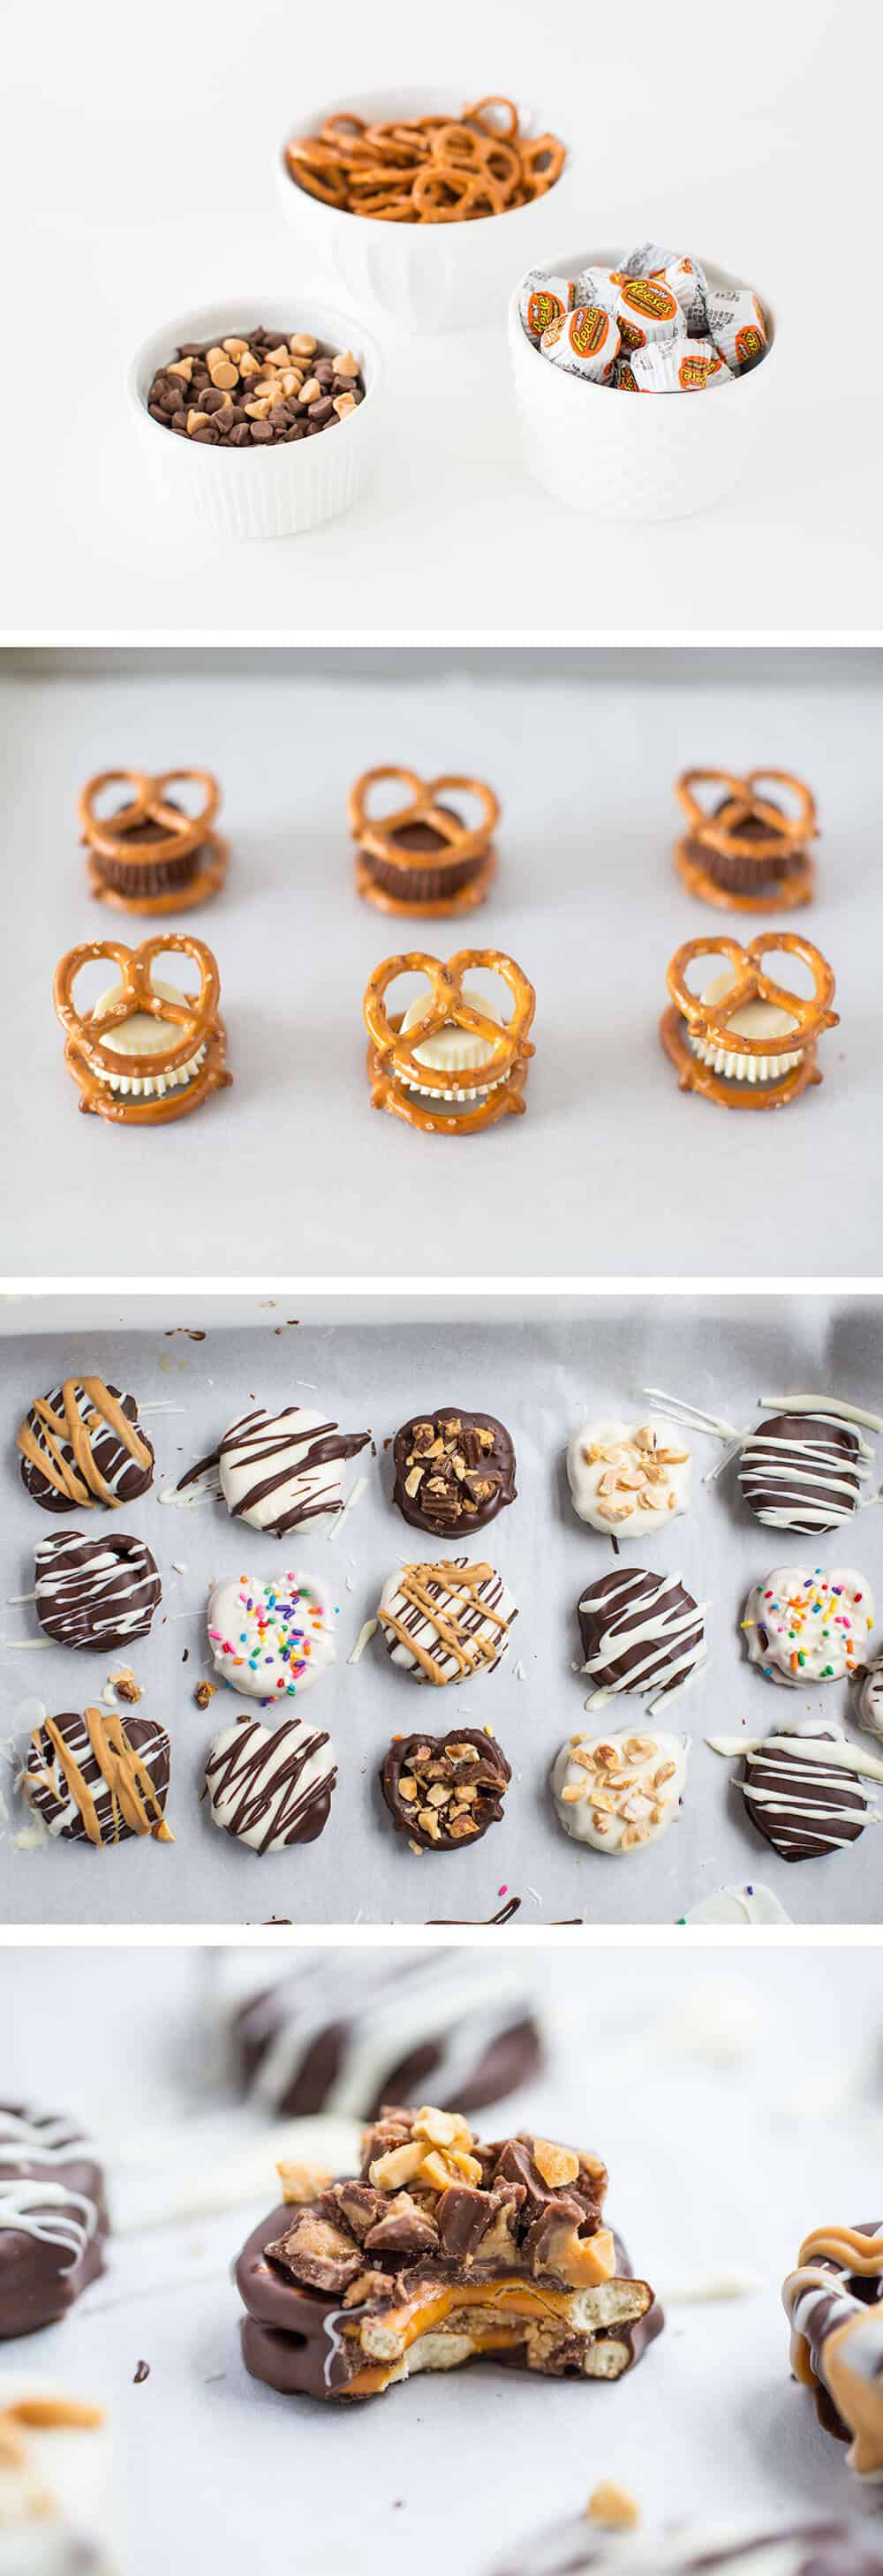 chocolate dipped reese\'s pretzels on table